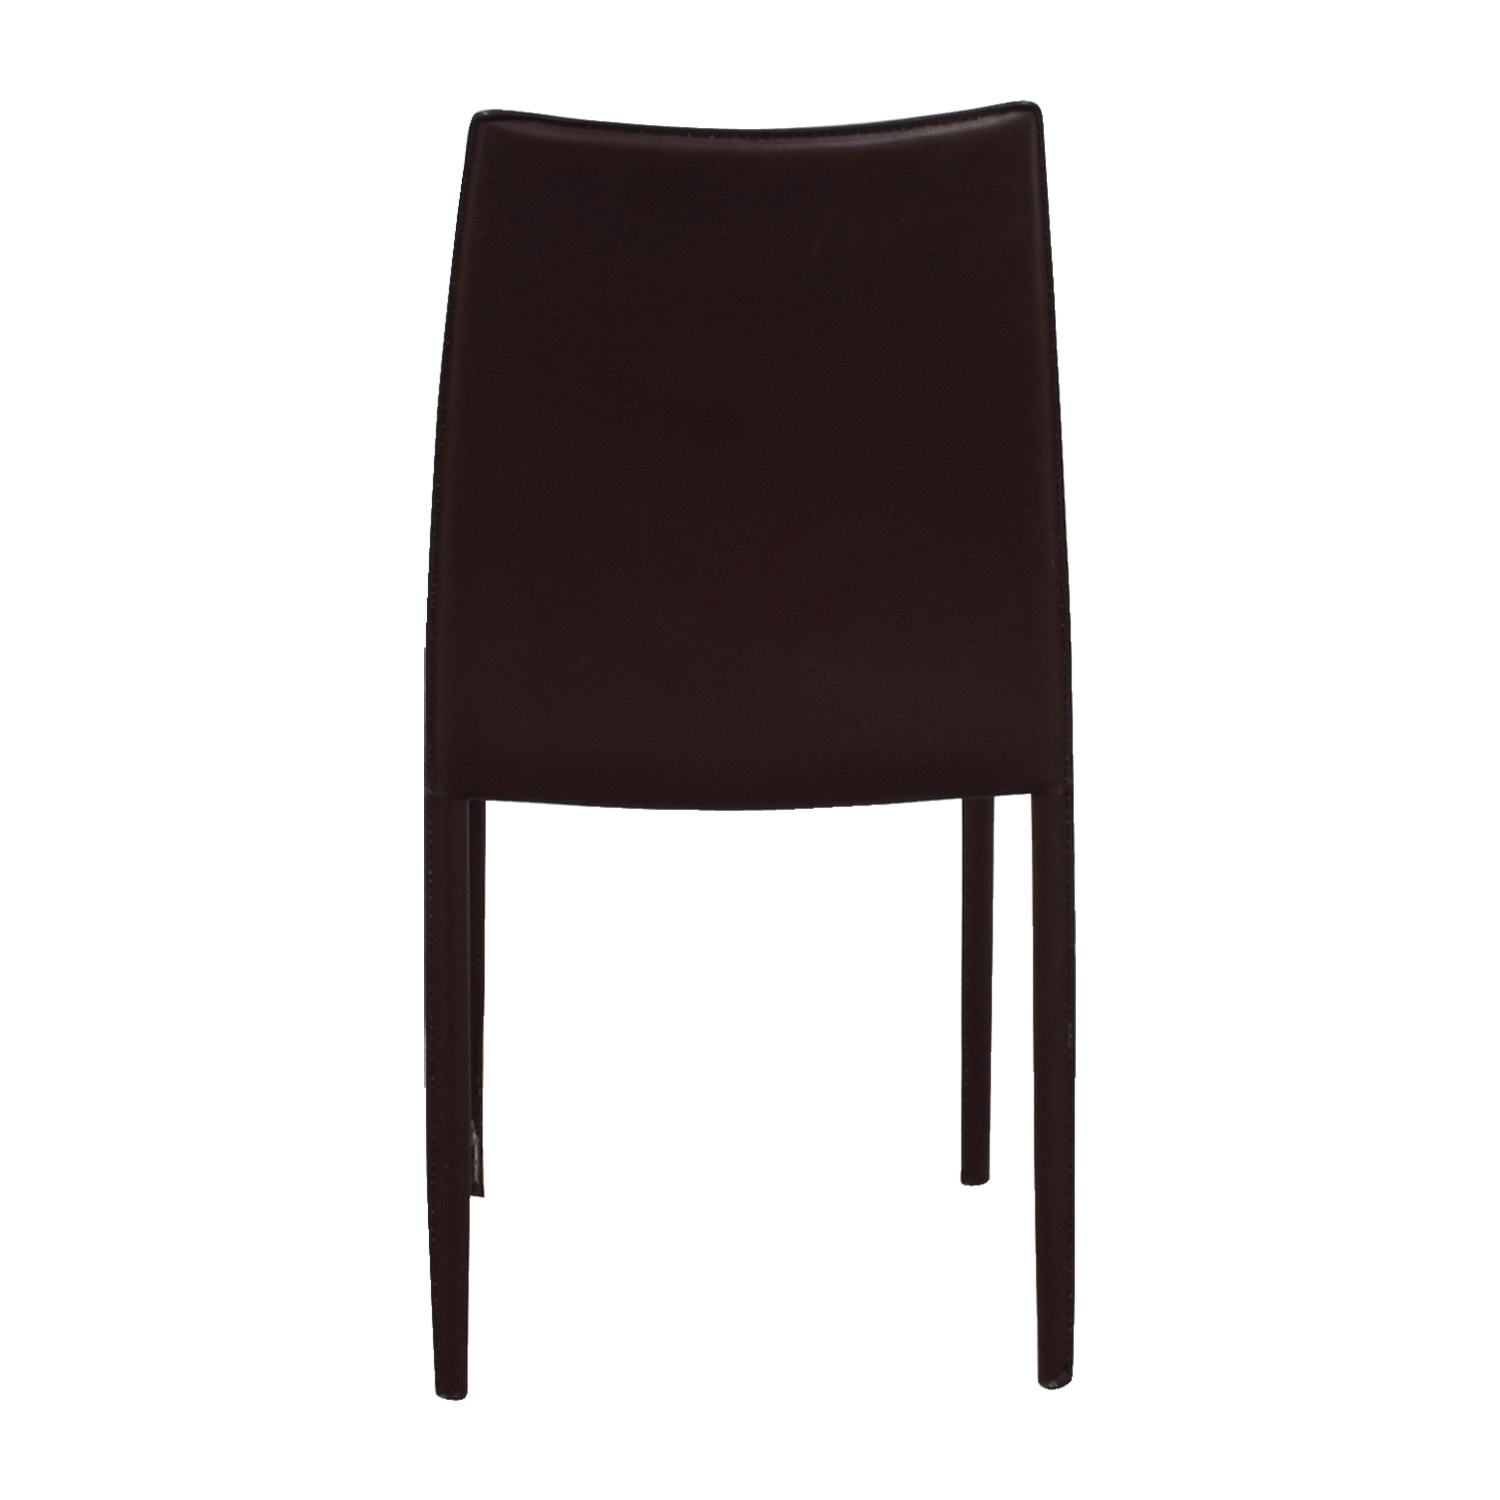 buy CB2 Brown Chair CB2